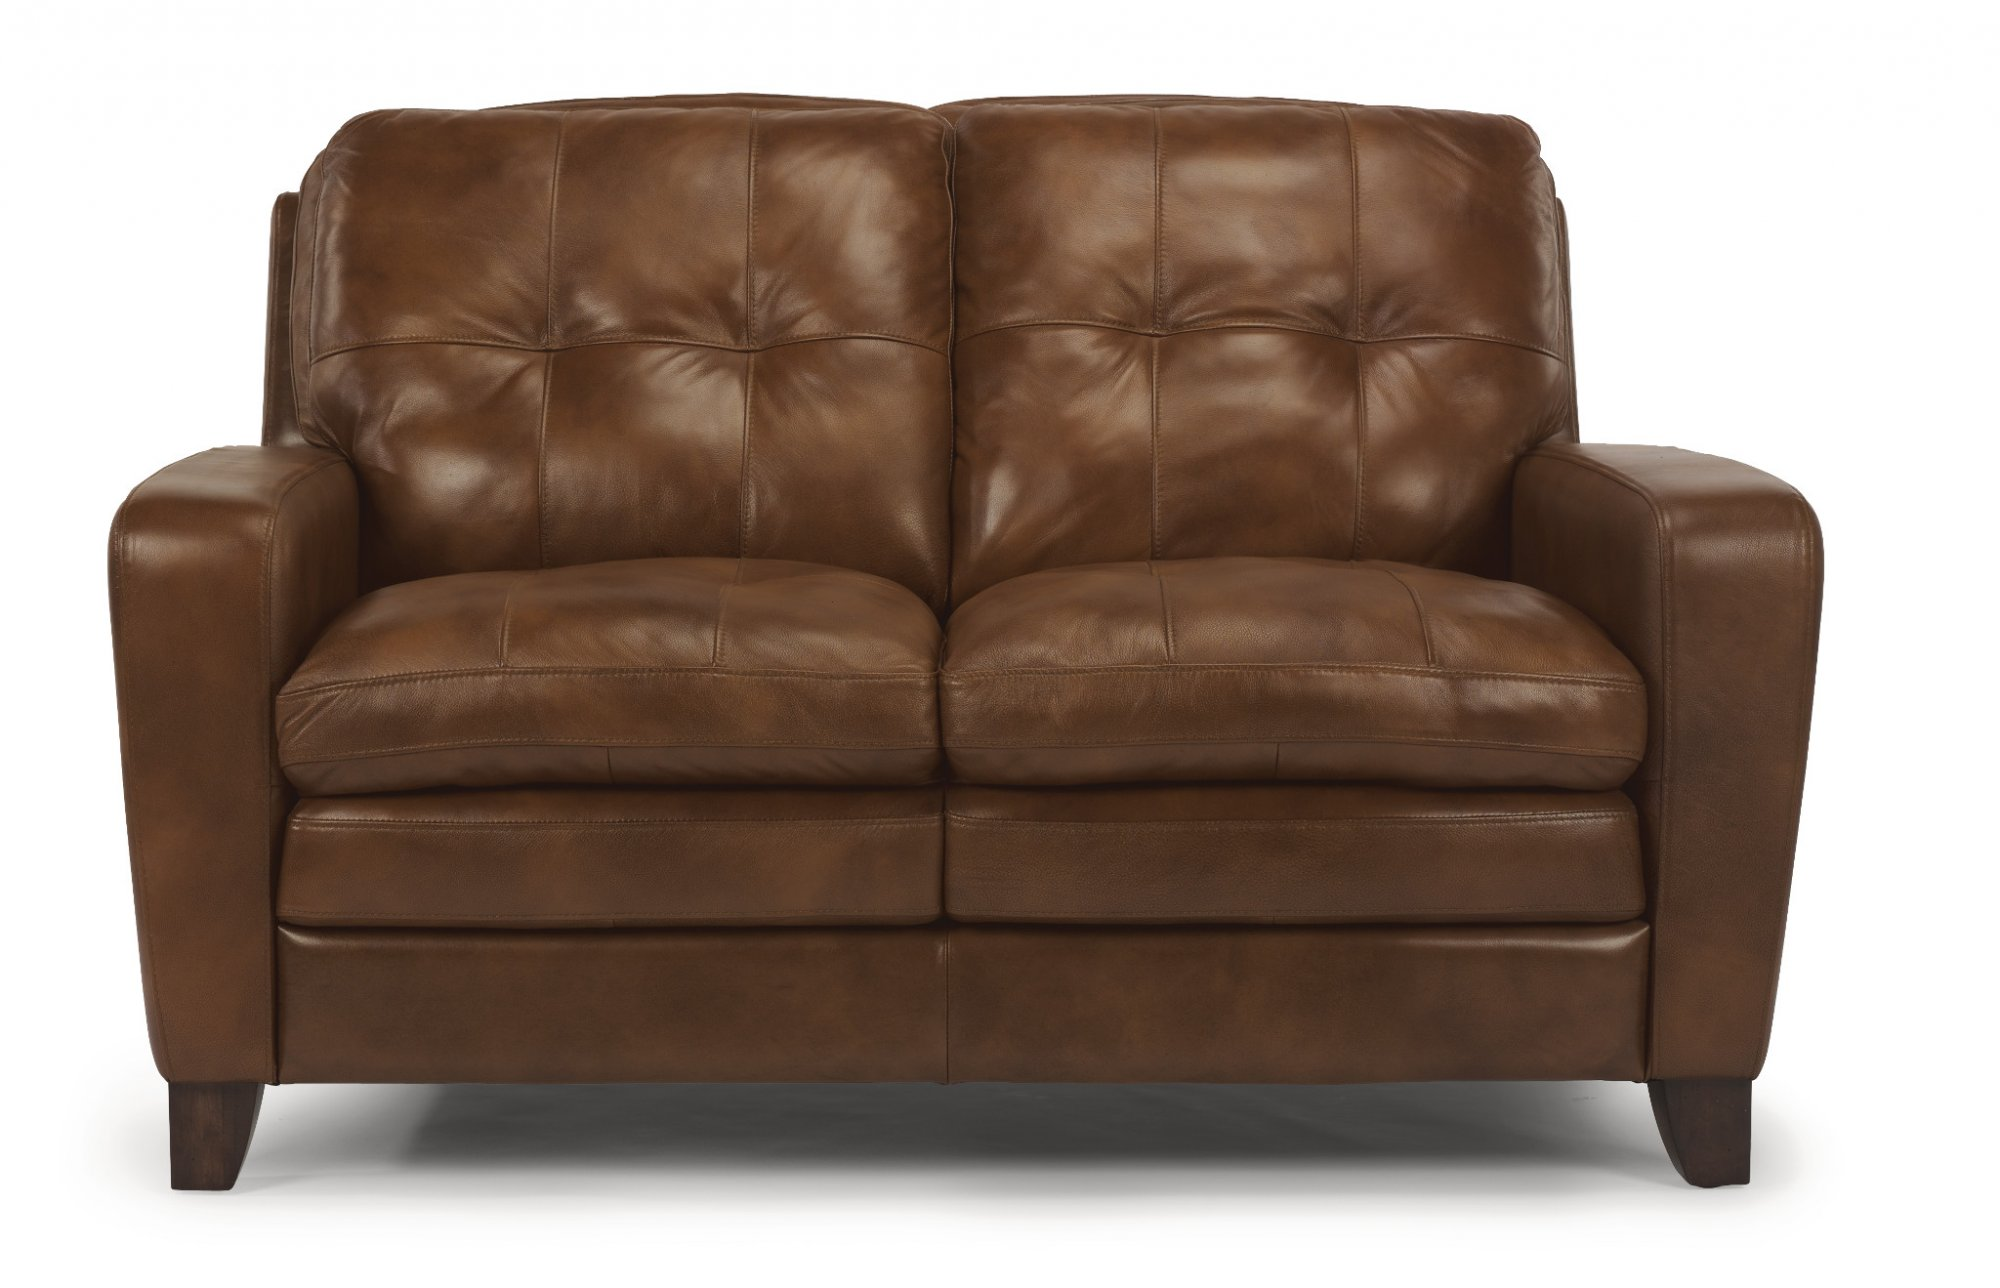 Super Flexsteel 1644 31 South Street Leather Sofa Highway Pdpeps Interior Chair Design Pdpepsorg